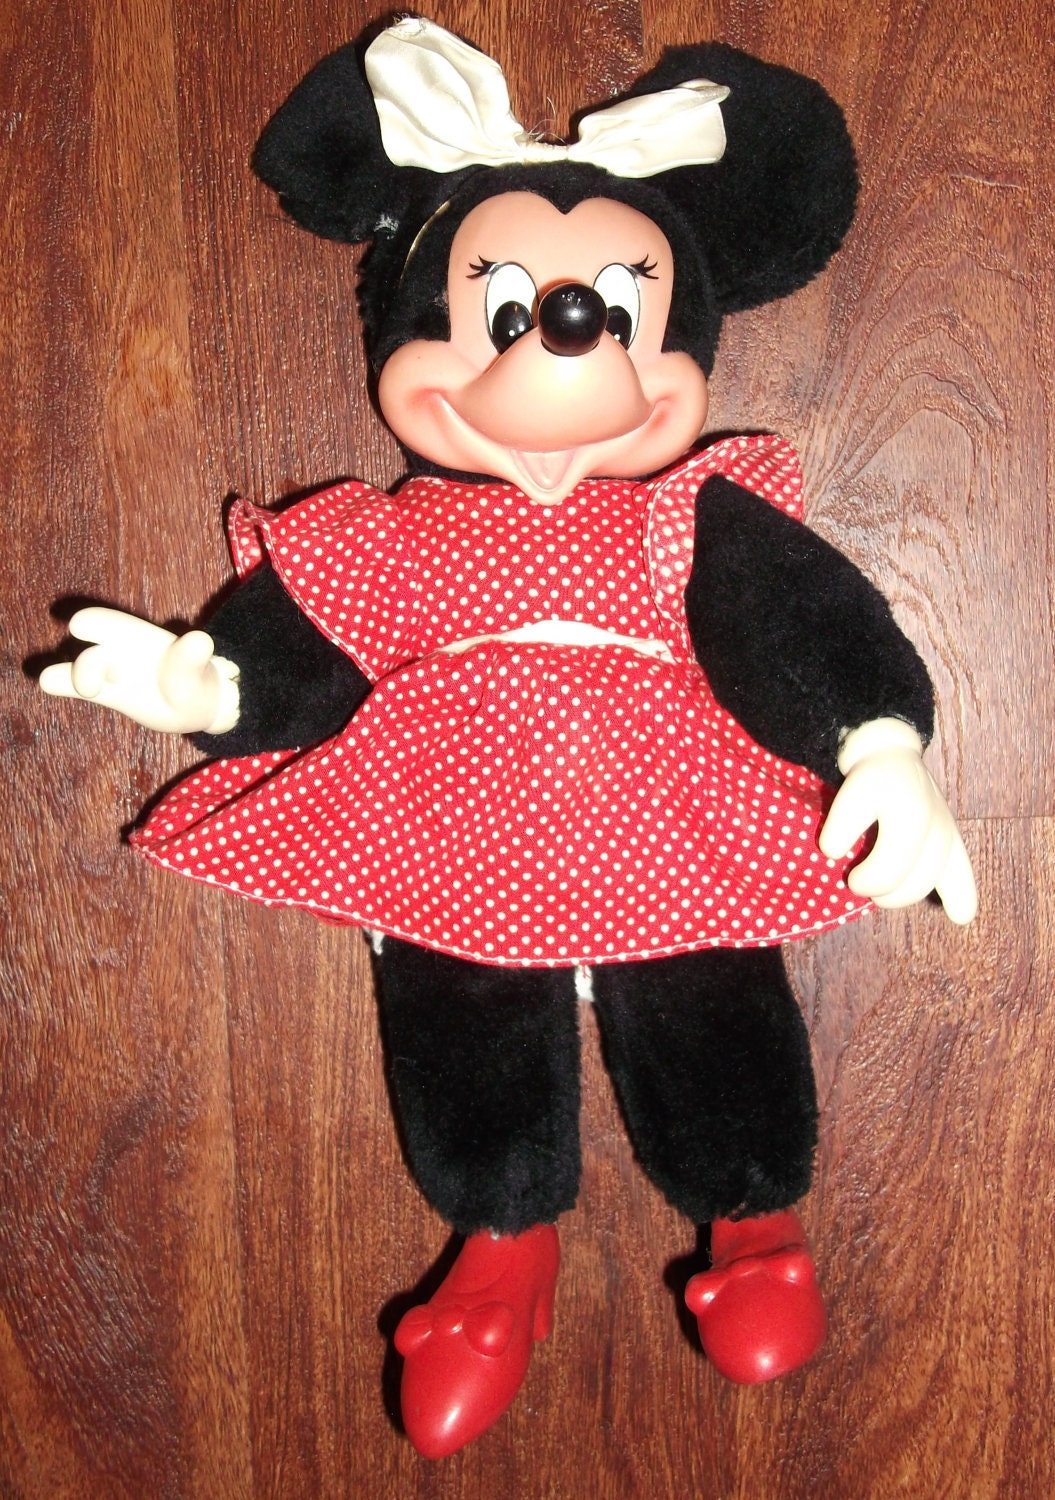 Vintage 10 Minnie Mouse 1981 Plush Doll With Red Shoes